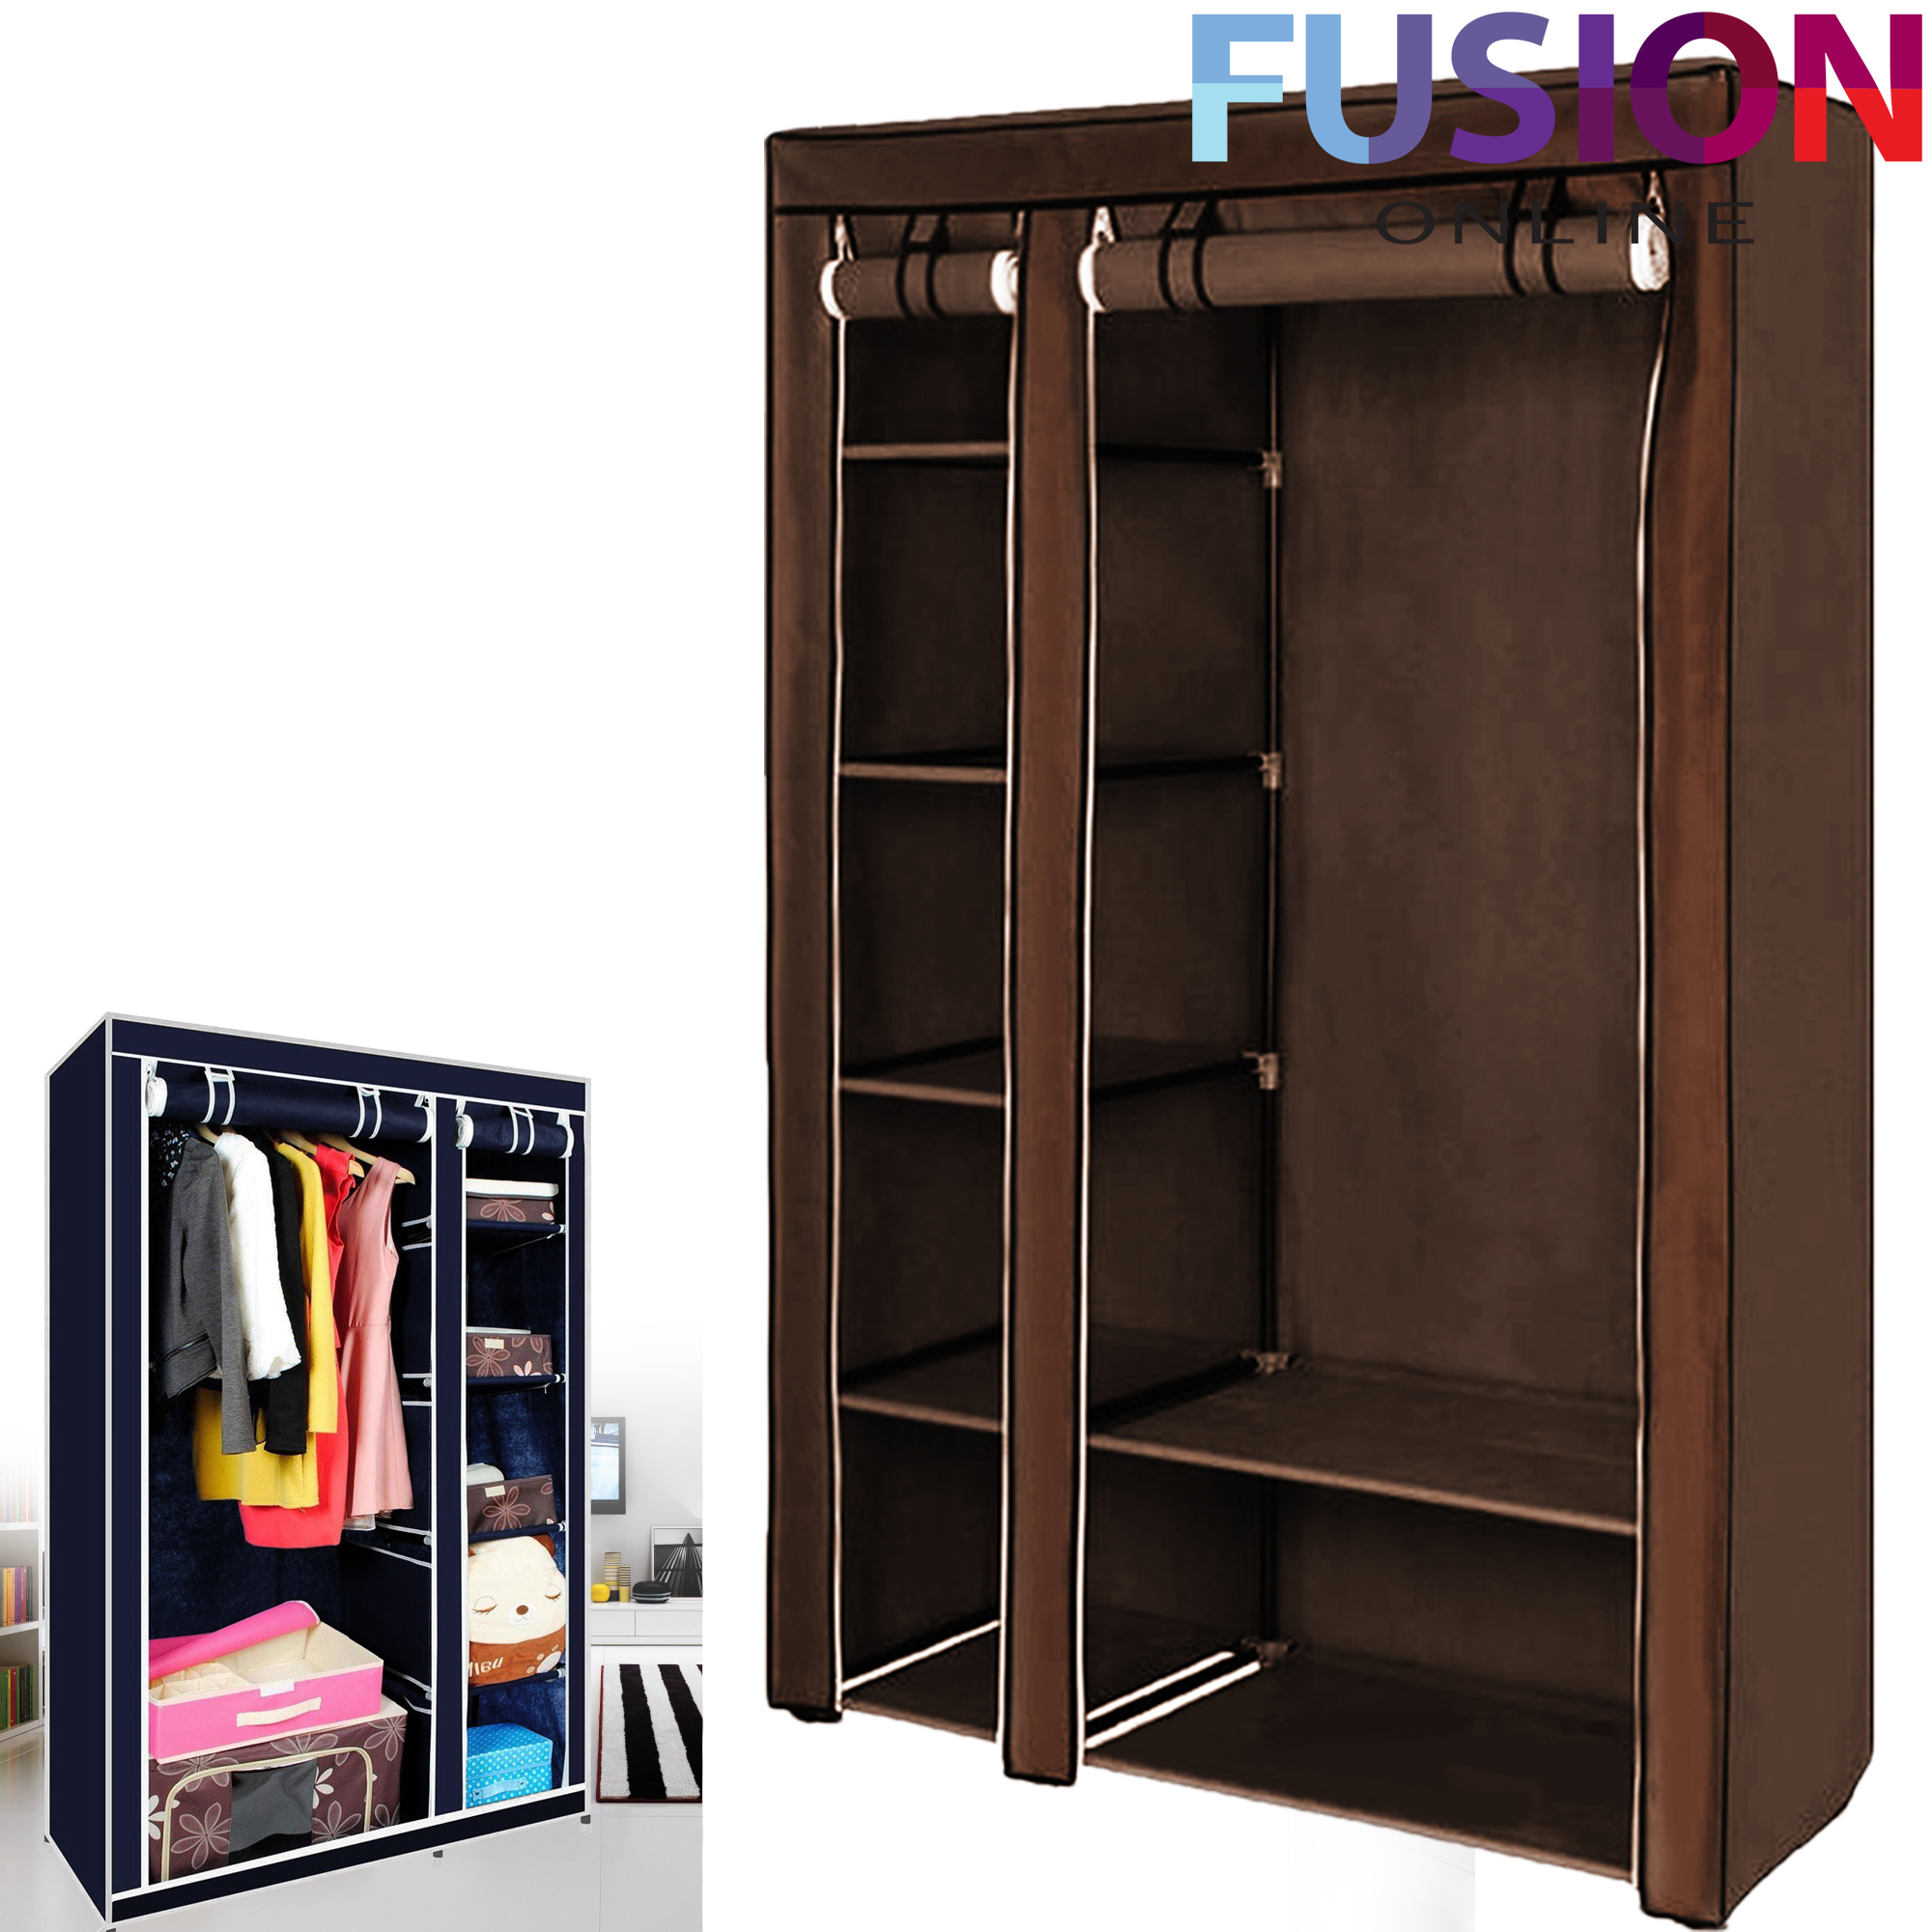 Fabric Storage Cabinets: Double Fabric Canvas Clothes Storage Organiser Wardrobe